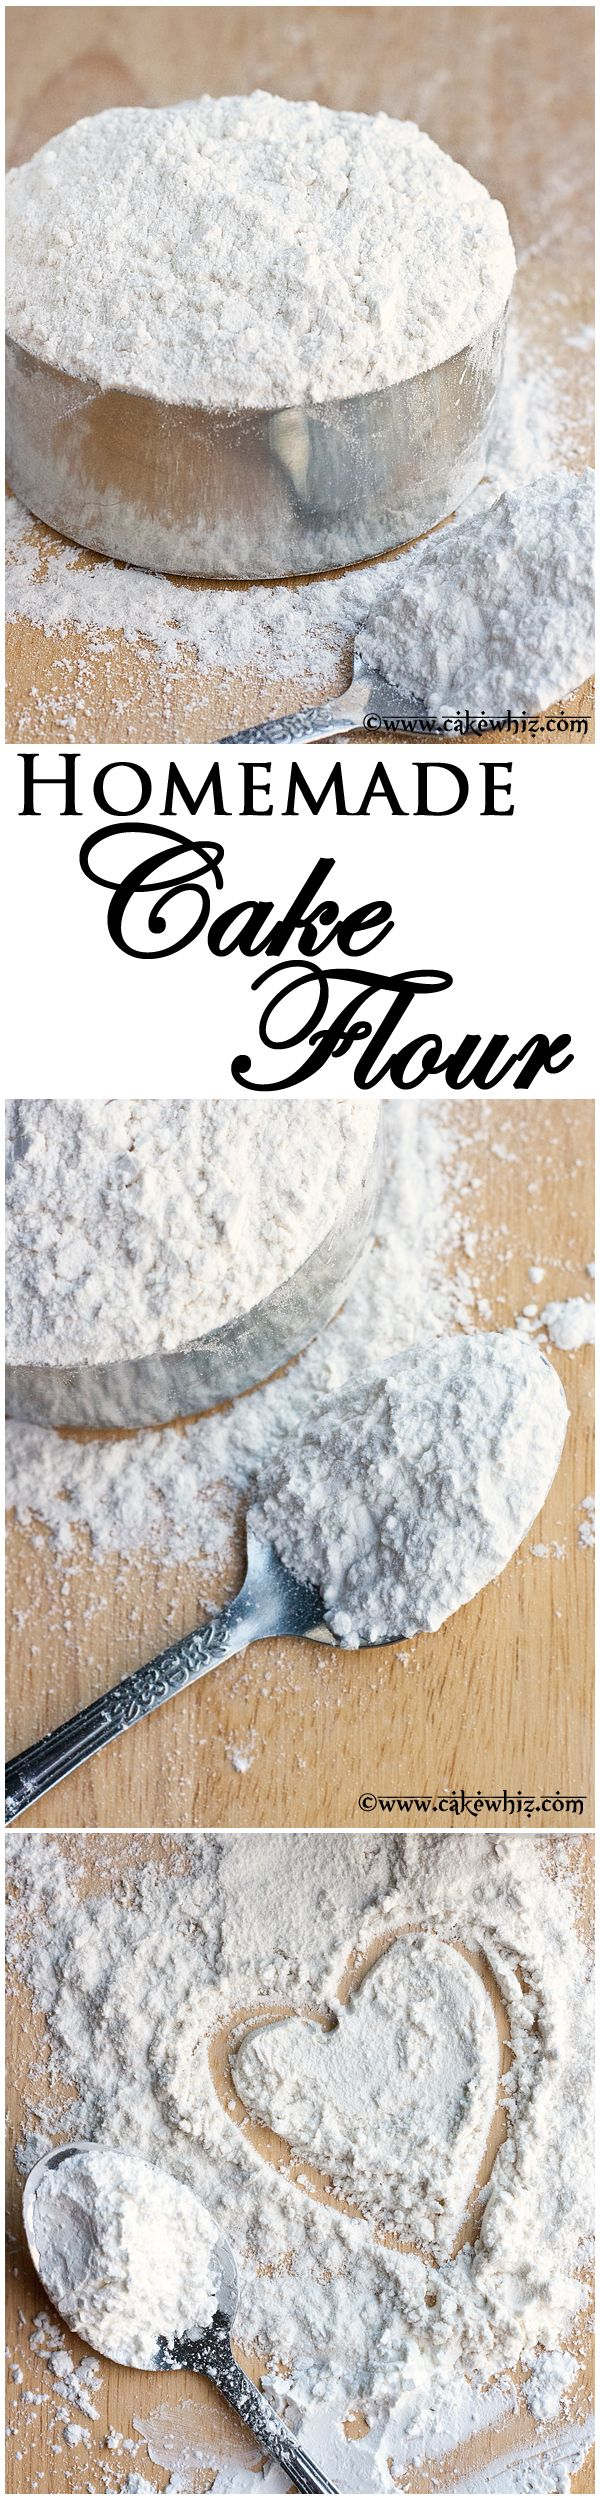 Cake flour is expensive. Learn to make CAKE FLOUR at home with just 2 ingredients! From cakewhiz.com